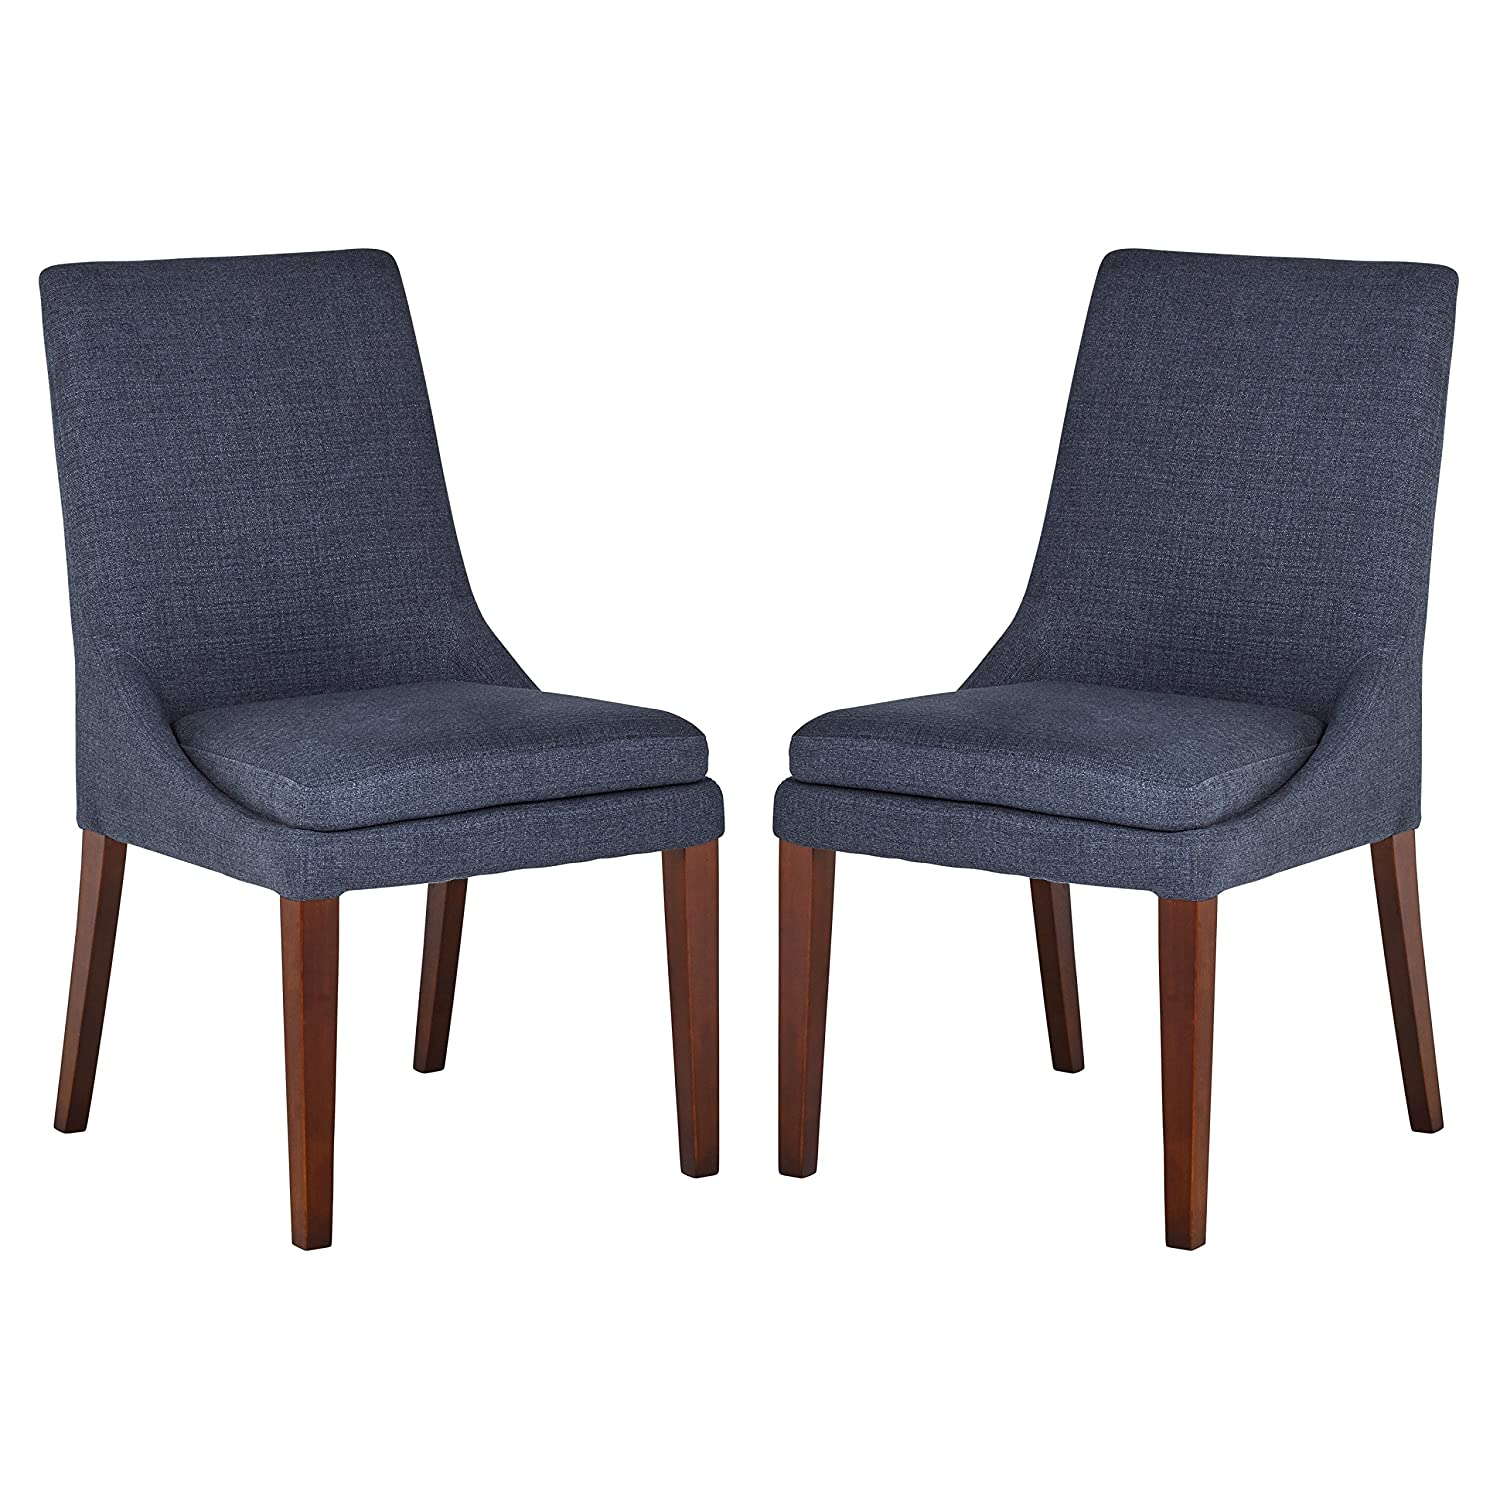 Stone Beam Alaina Modern Upholstered Dining Room Kitchen Chairs, 37 Inch Height, Set of 2, Navy Blue